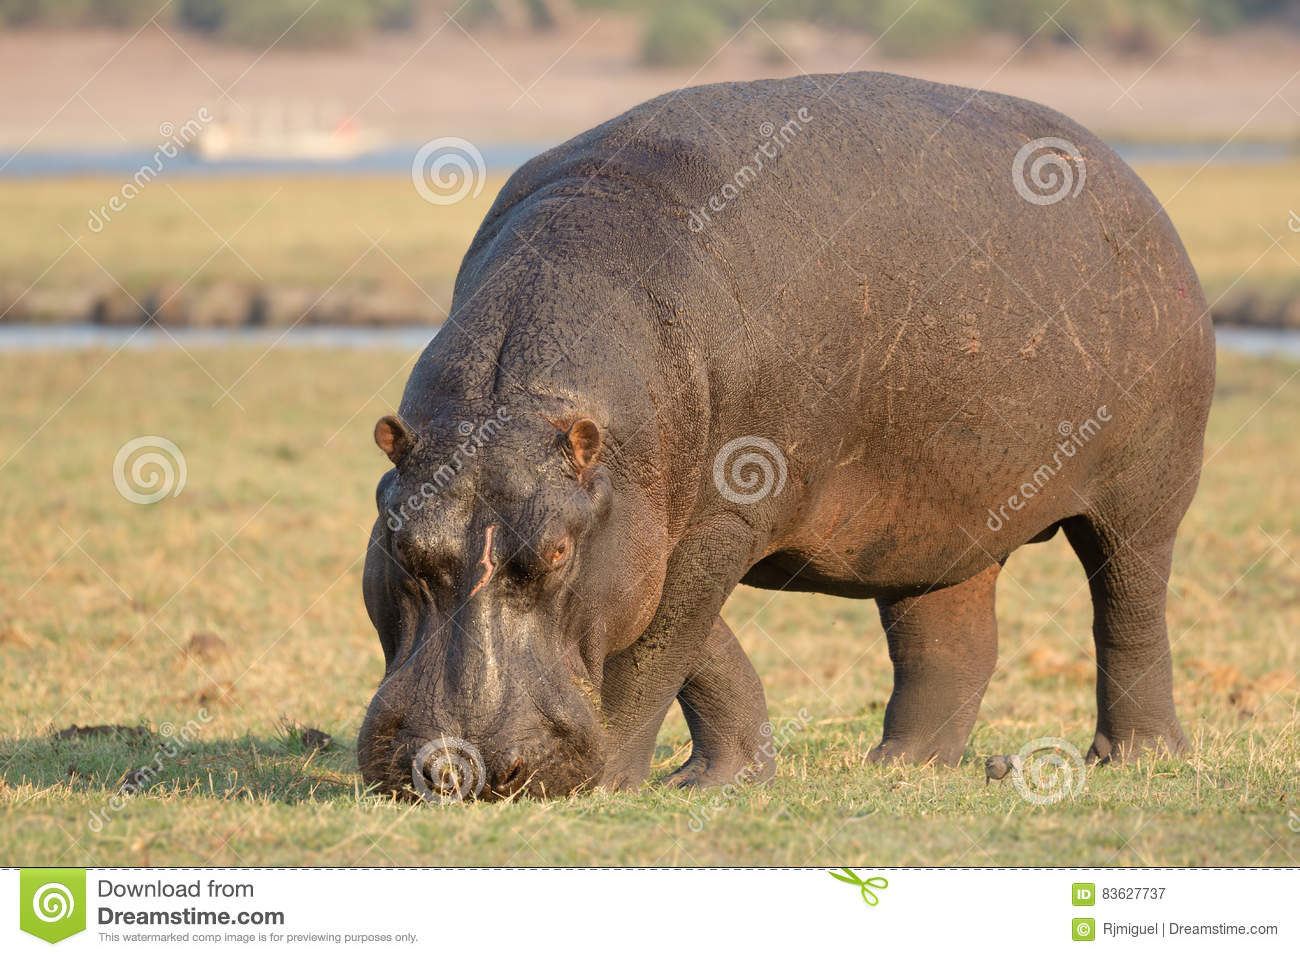 Hippo eating grass - Stock Photo - Dissolve |Hippo Eating Grass